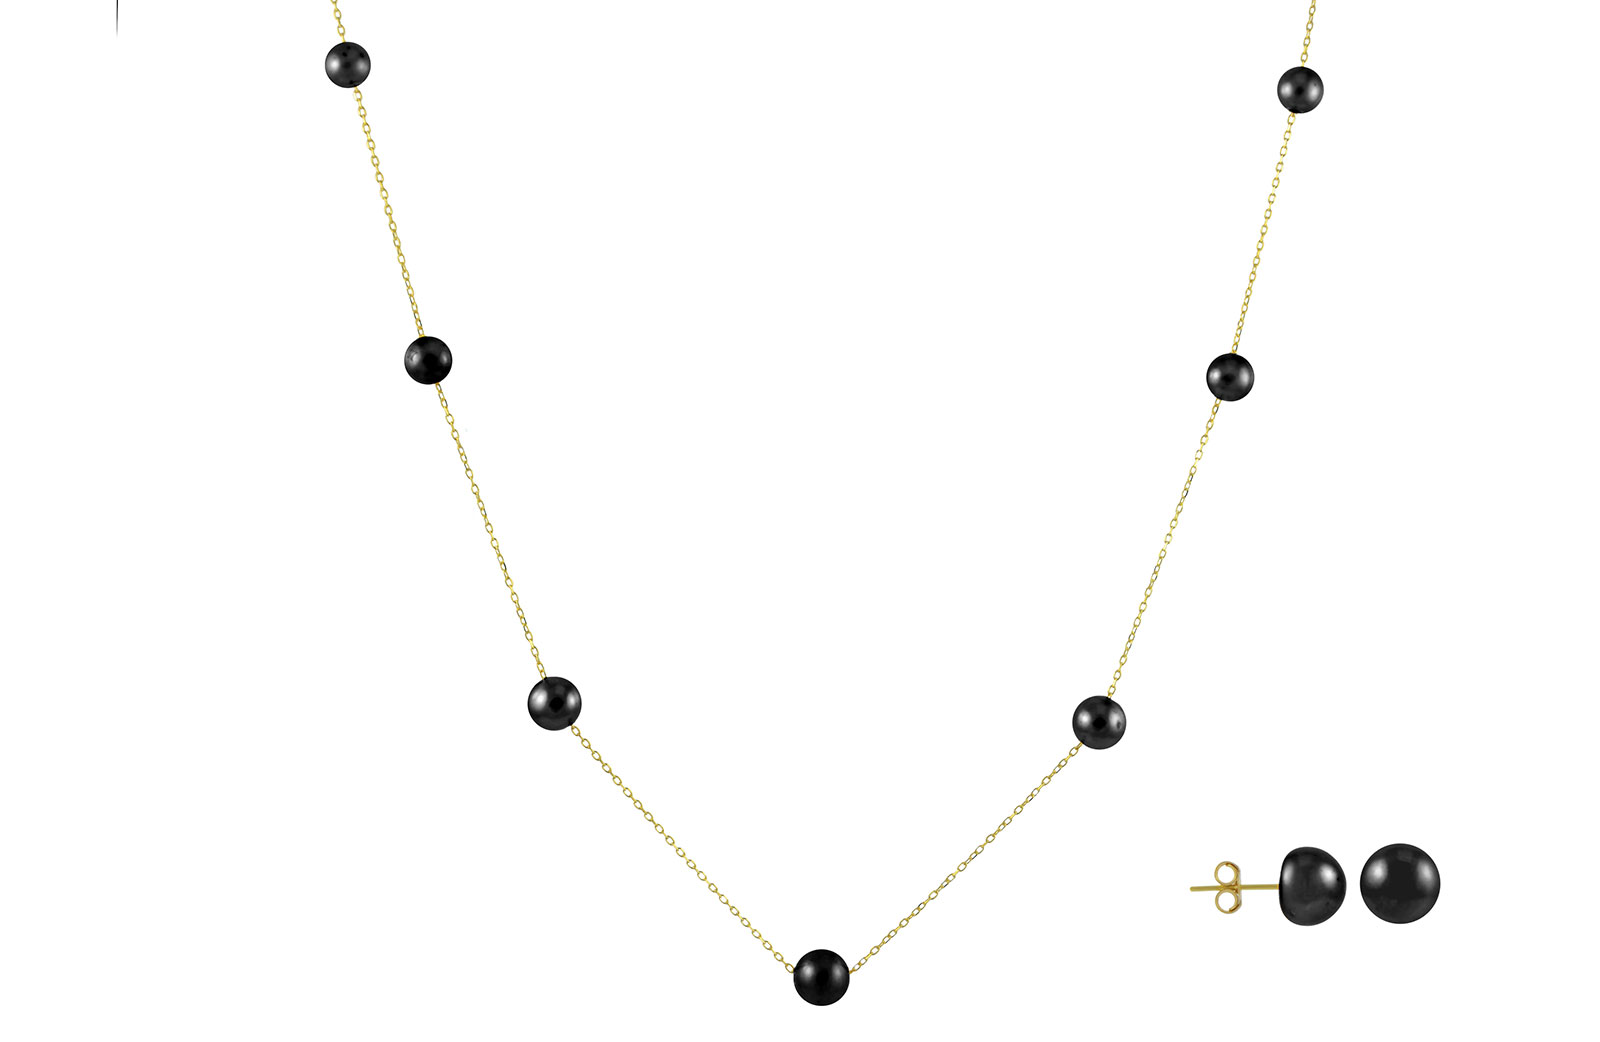 VP Jewels 18K Solid Gold 5-7MM Gradual  Built-in Black Pearl Necklace + 18K Gold 7MM Pearl Earrings